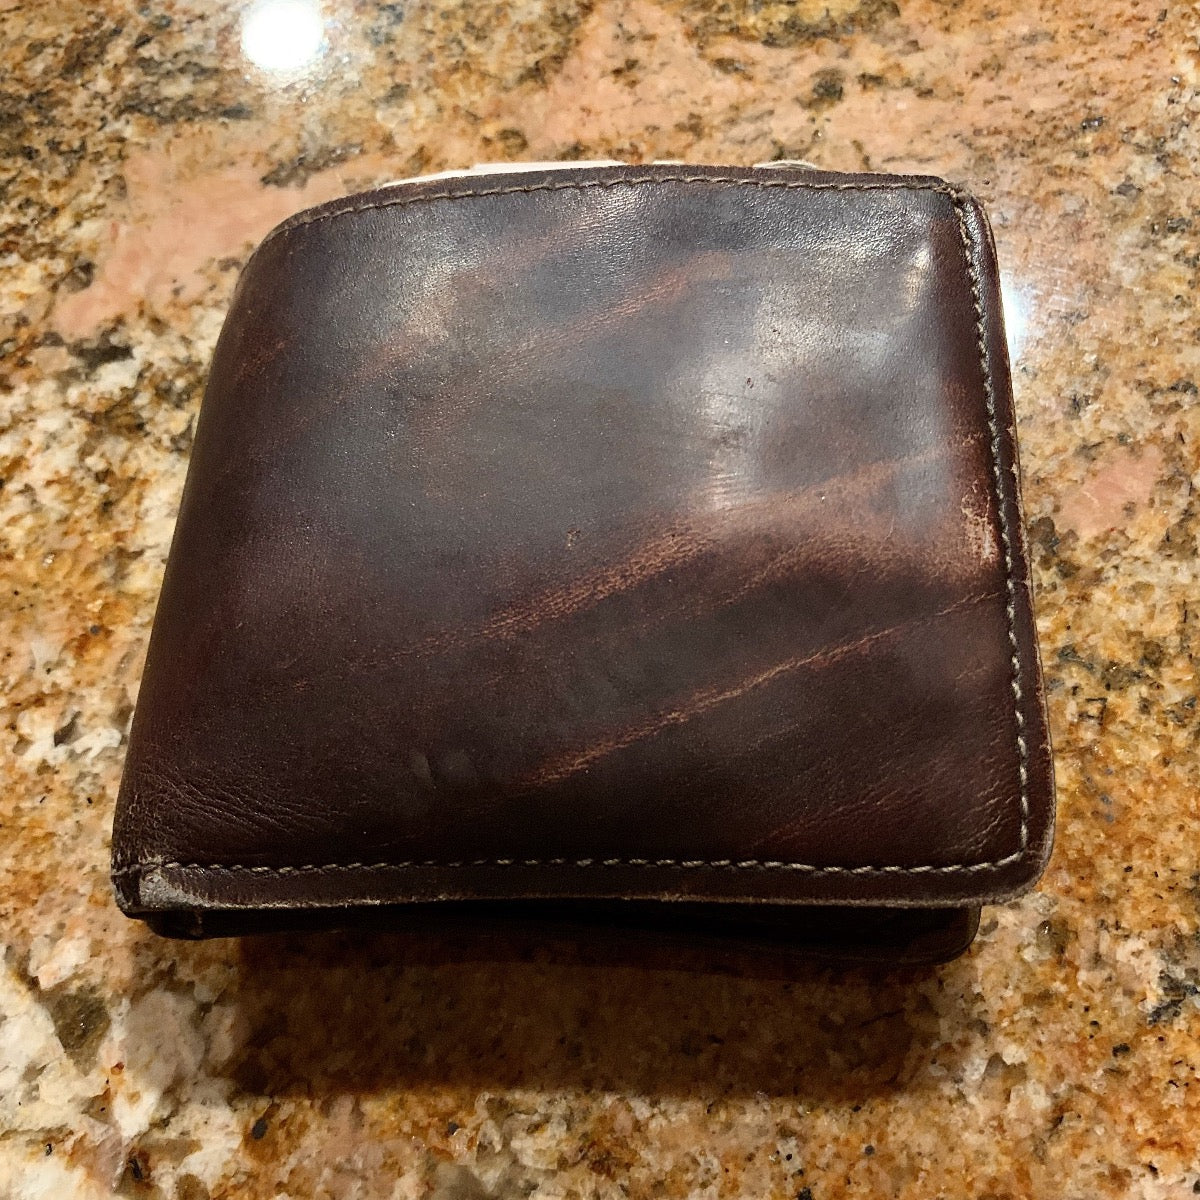 example: 8 year old wallet showing no signs of breakdown